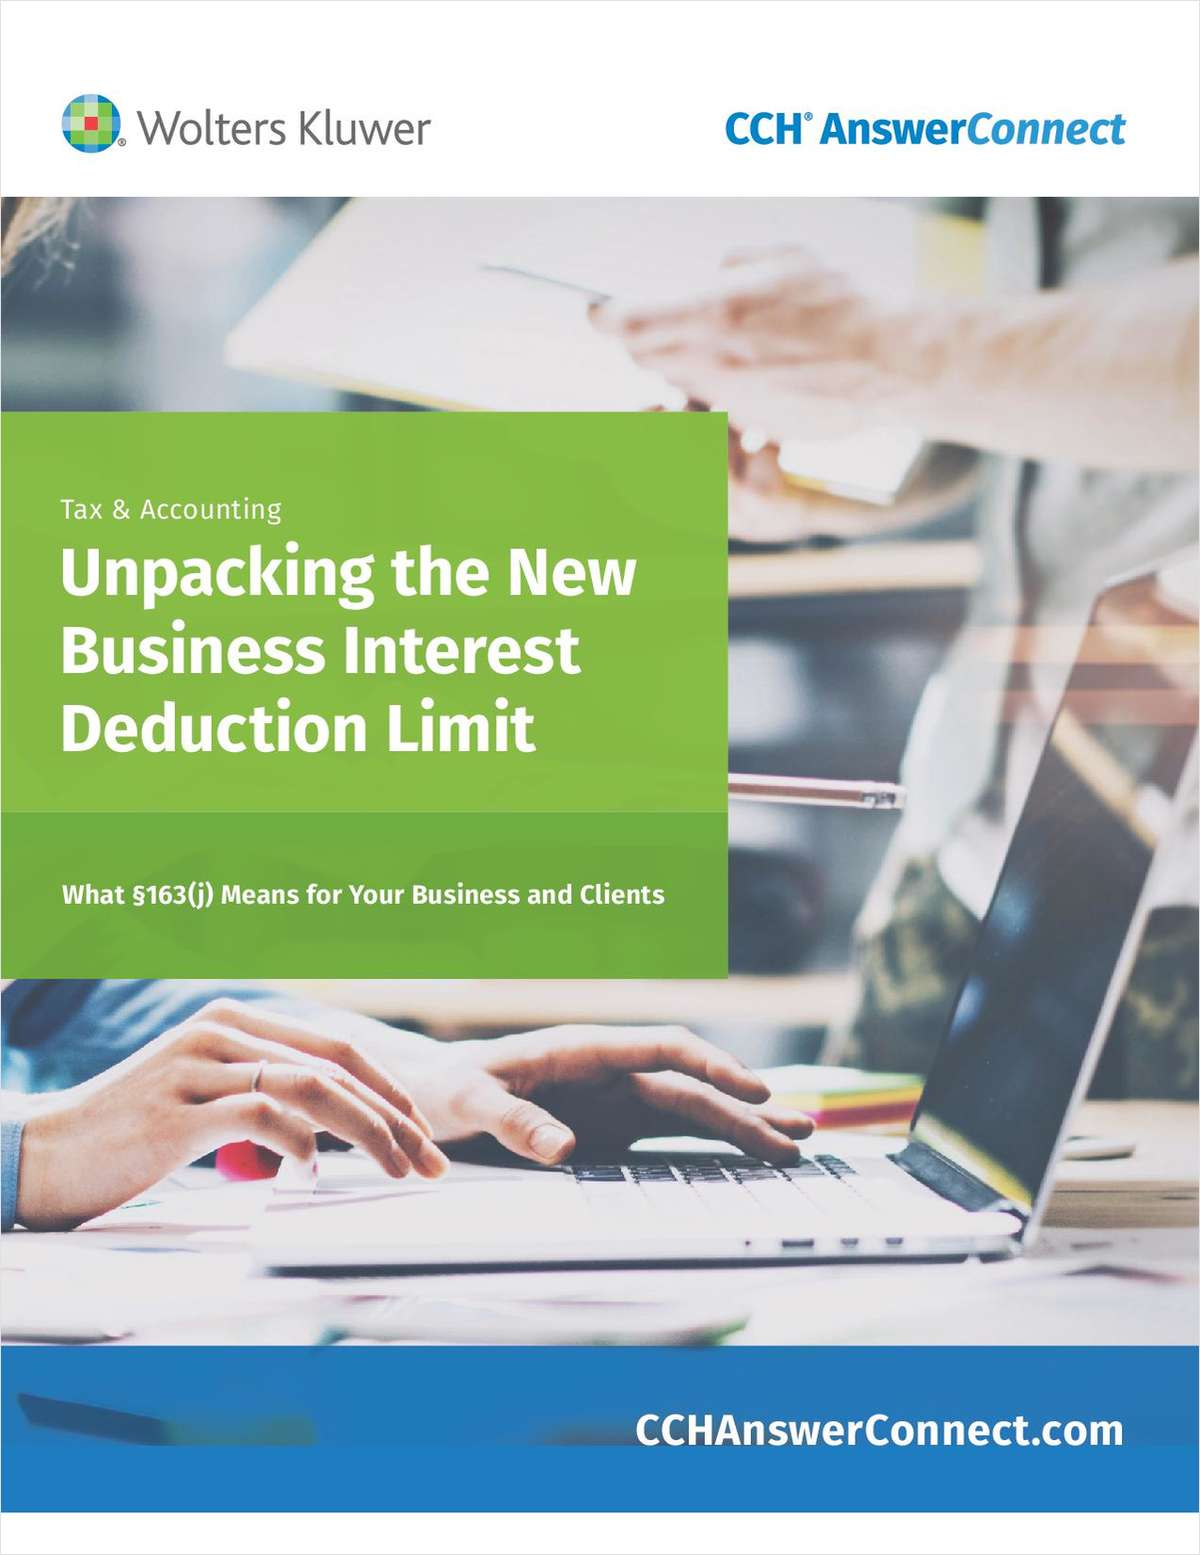 Unpacking the New Business Interest Deduction Limit